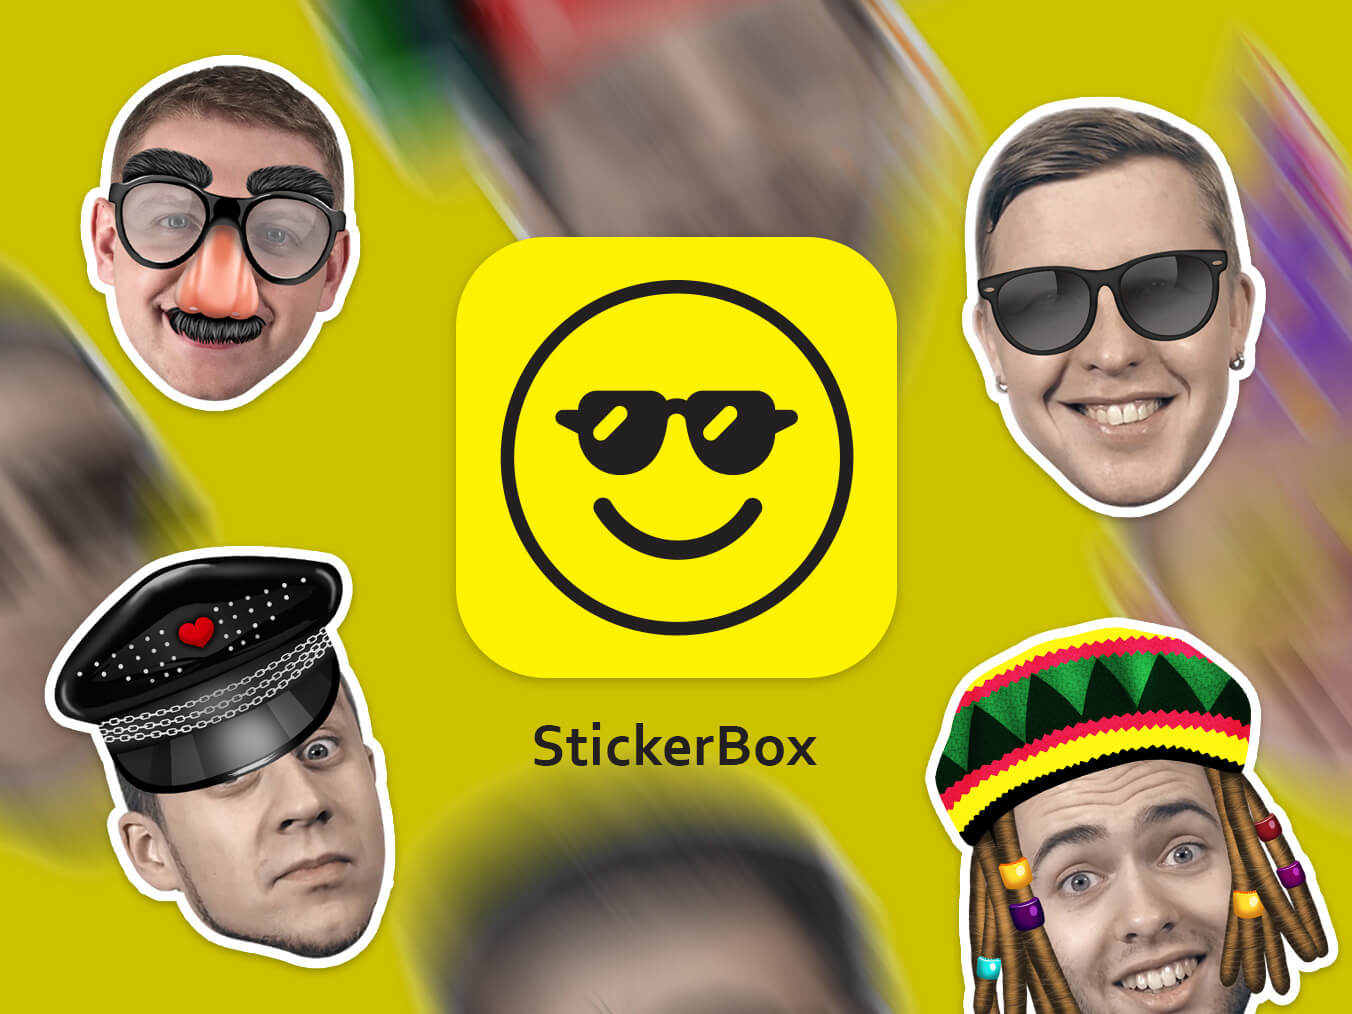 StickerBox–Episode 1: Why We Failed When We Tried to Segment Faces With Algorithms